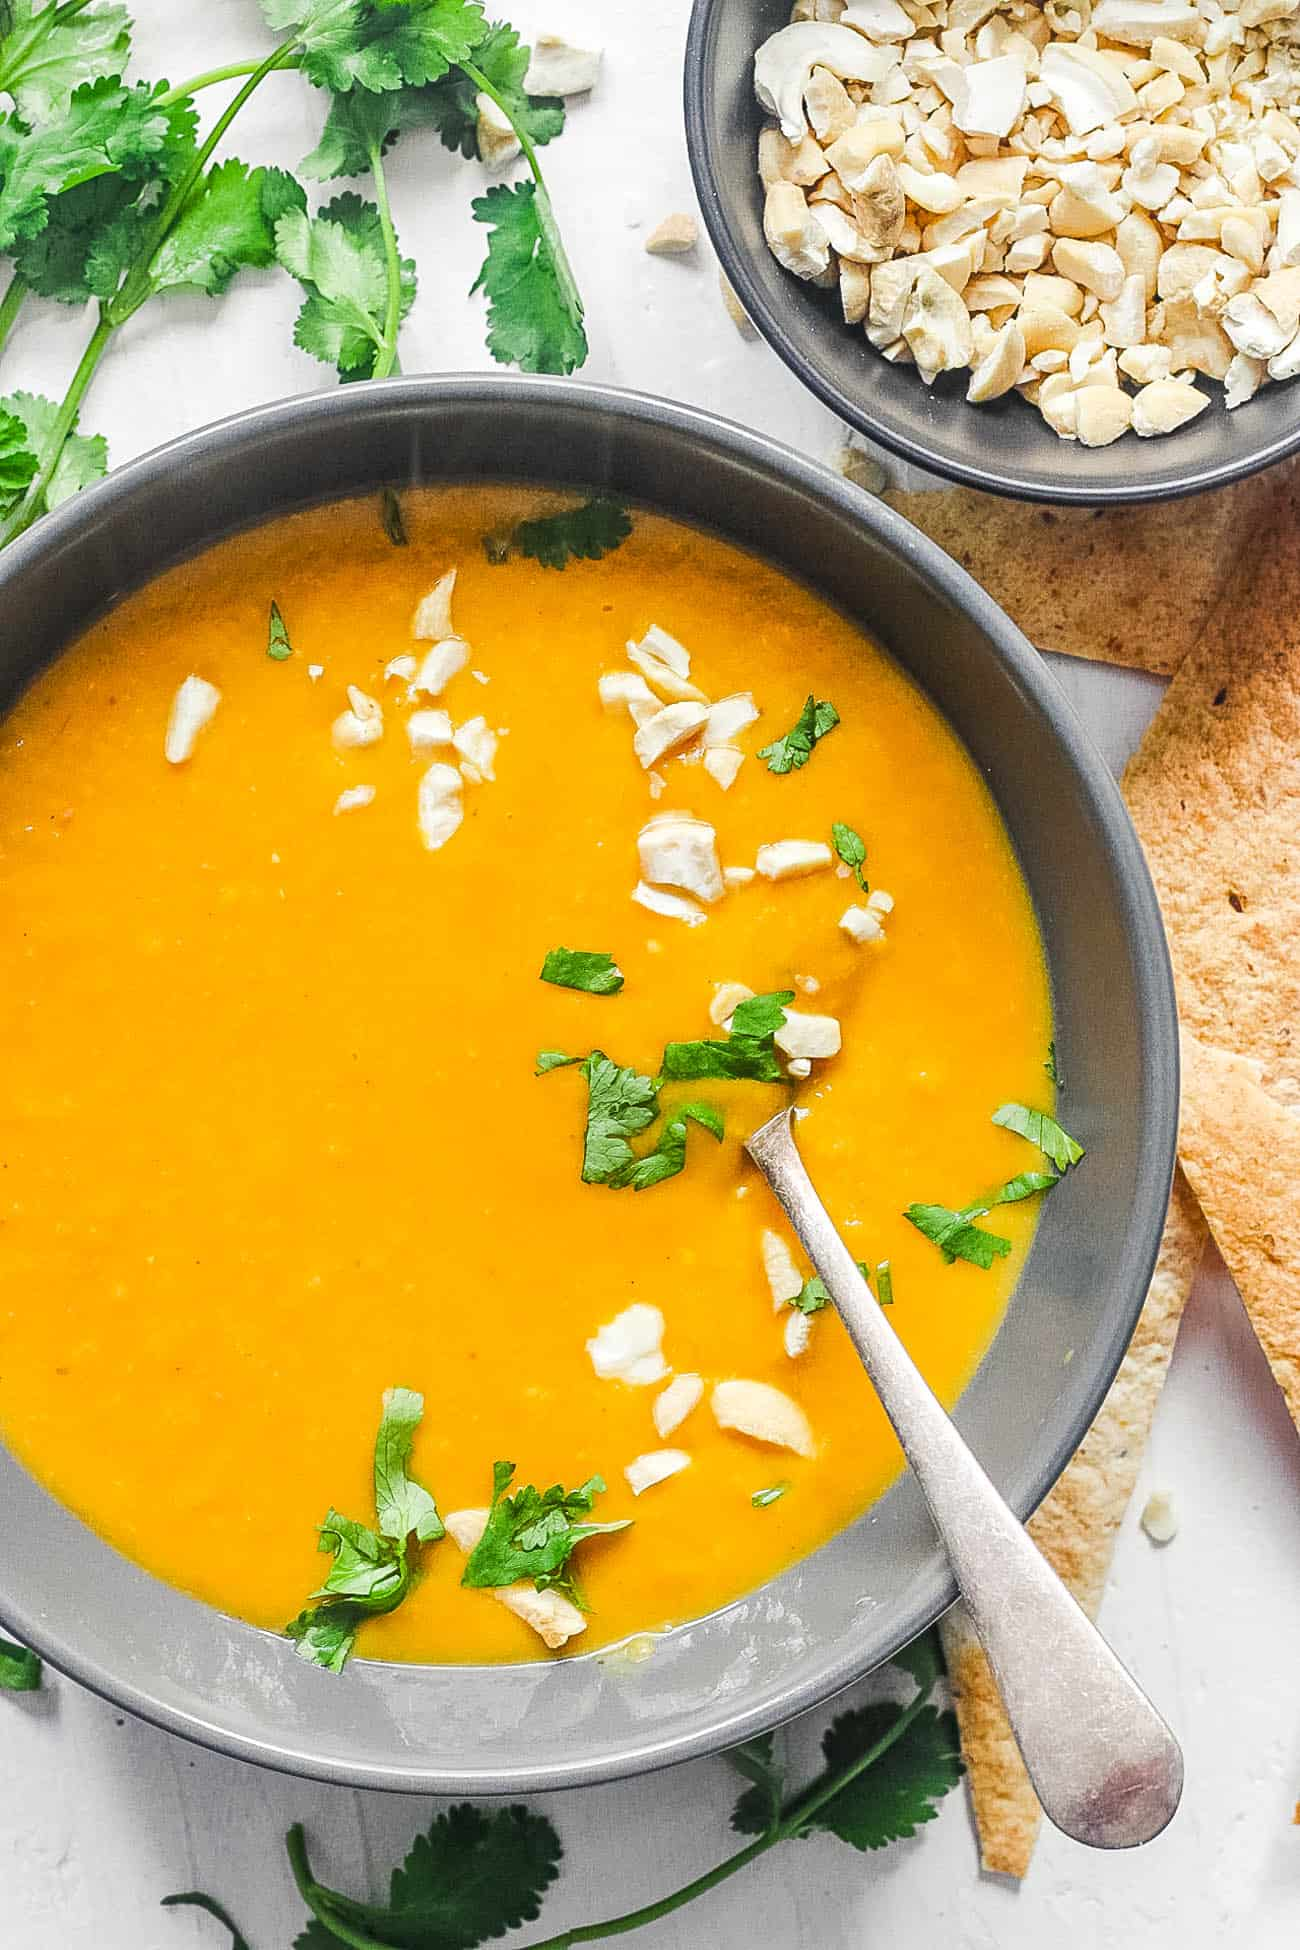 creamy butternut squash soup with coconut milk, cilantro and crushed nuts served in a black bowl